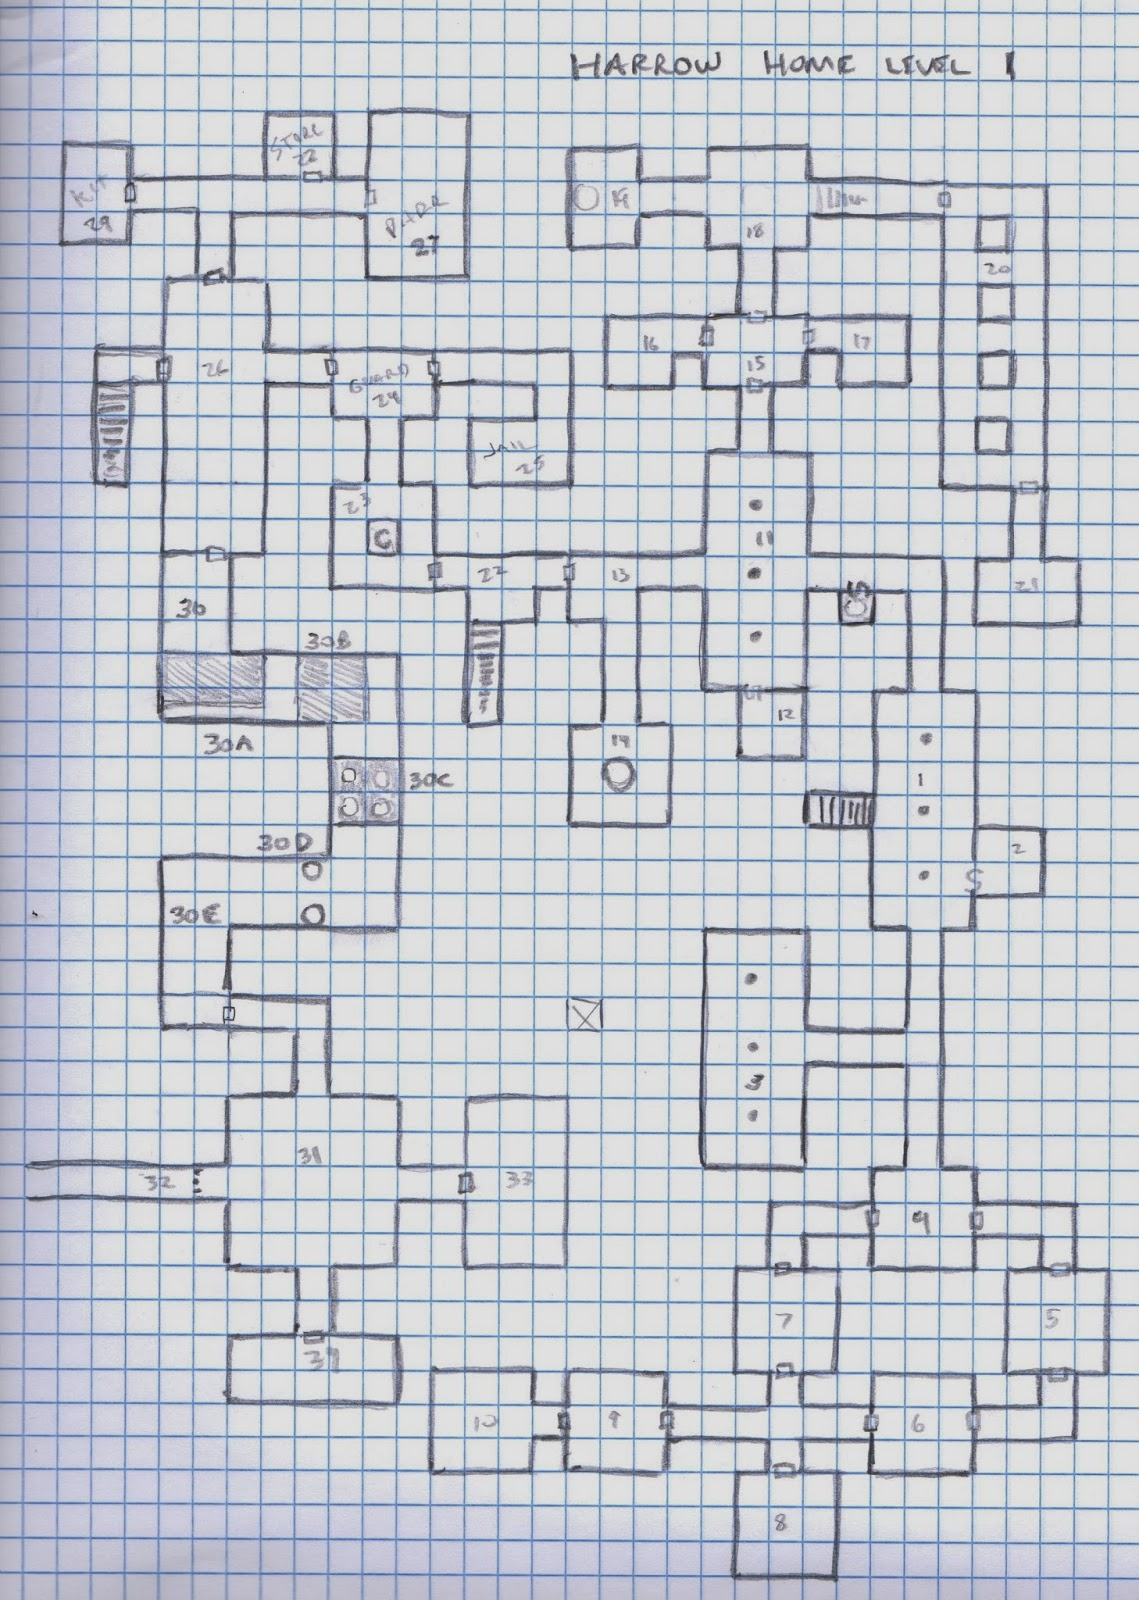 Dreams in the Lich House: Harrow Home - Dungeon Level 1 (Map)